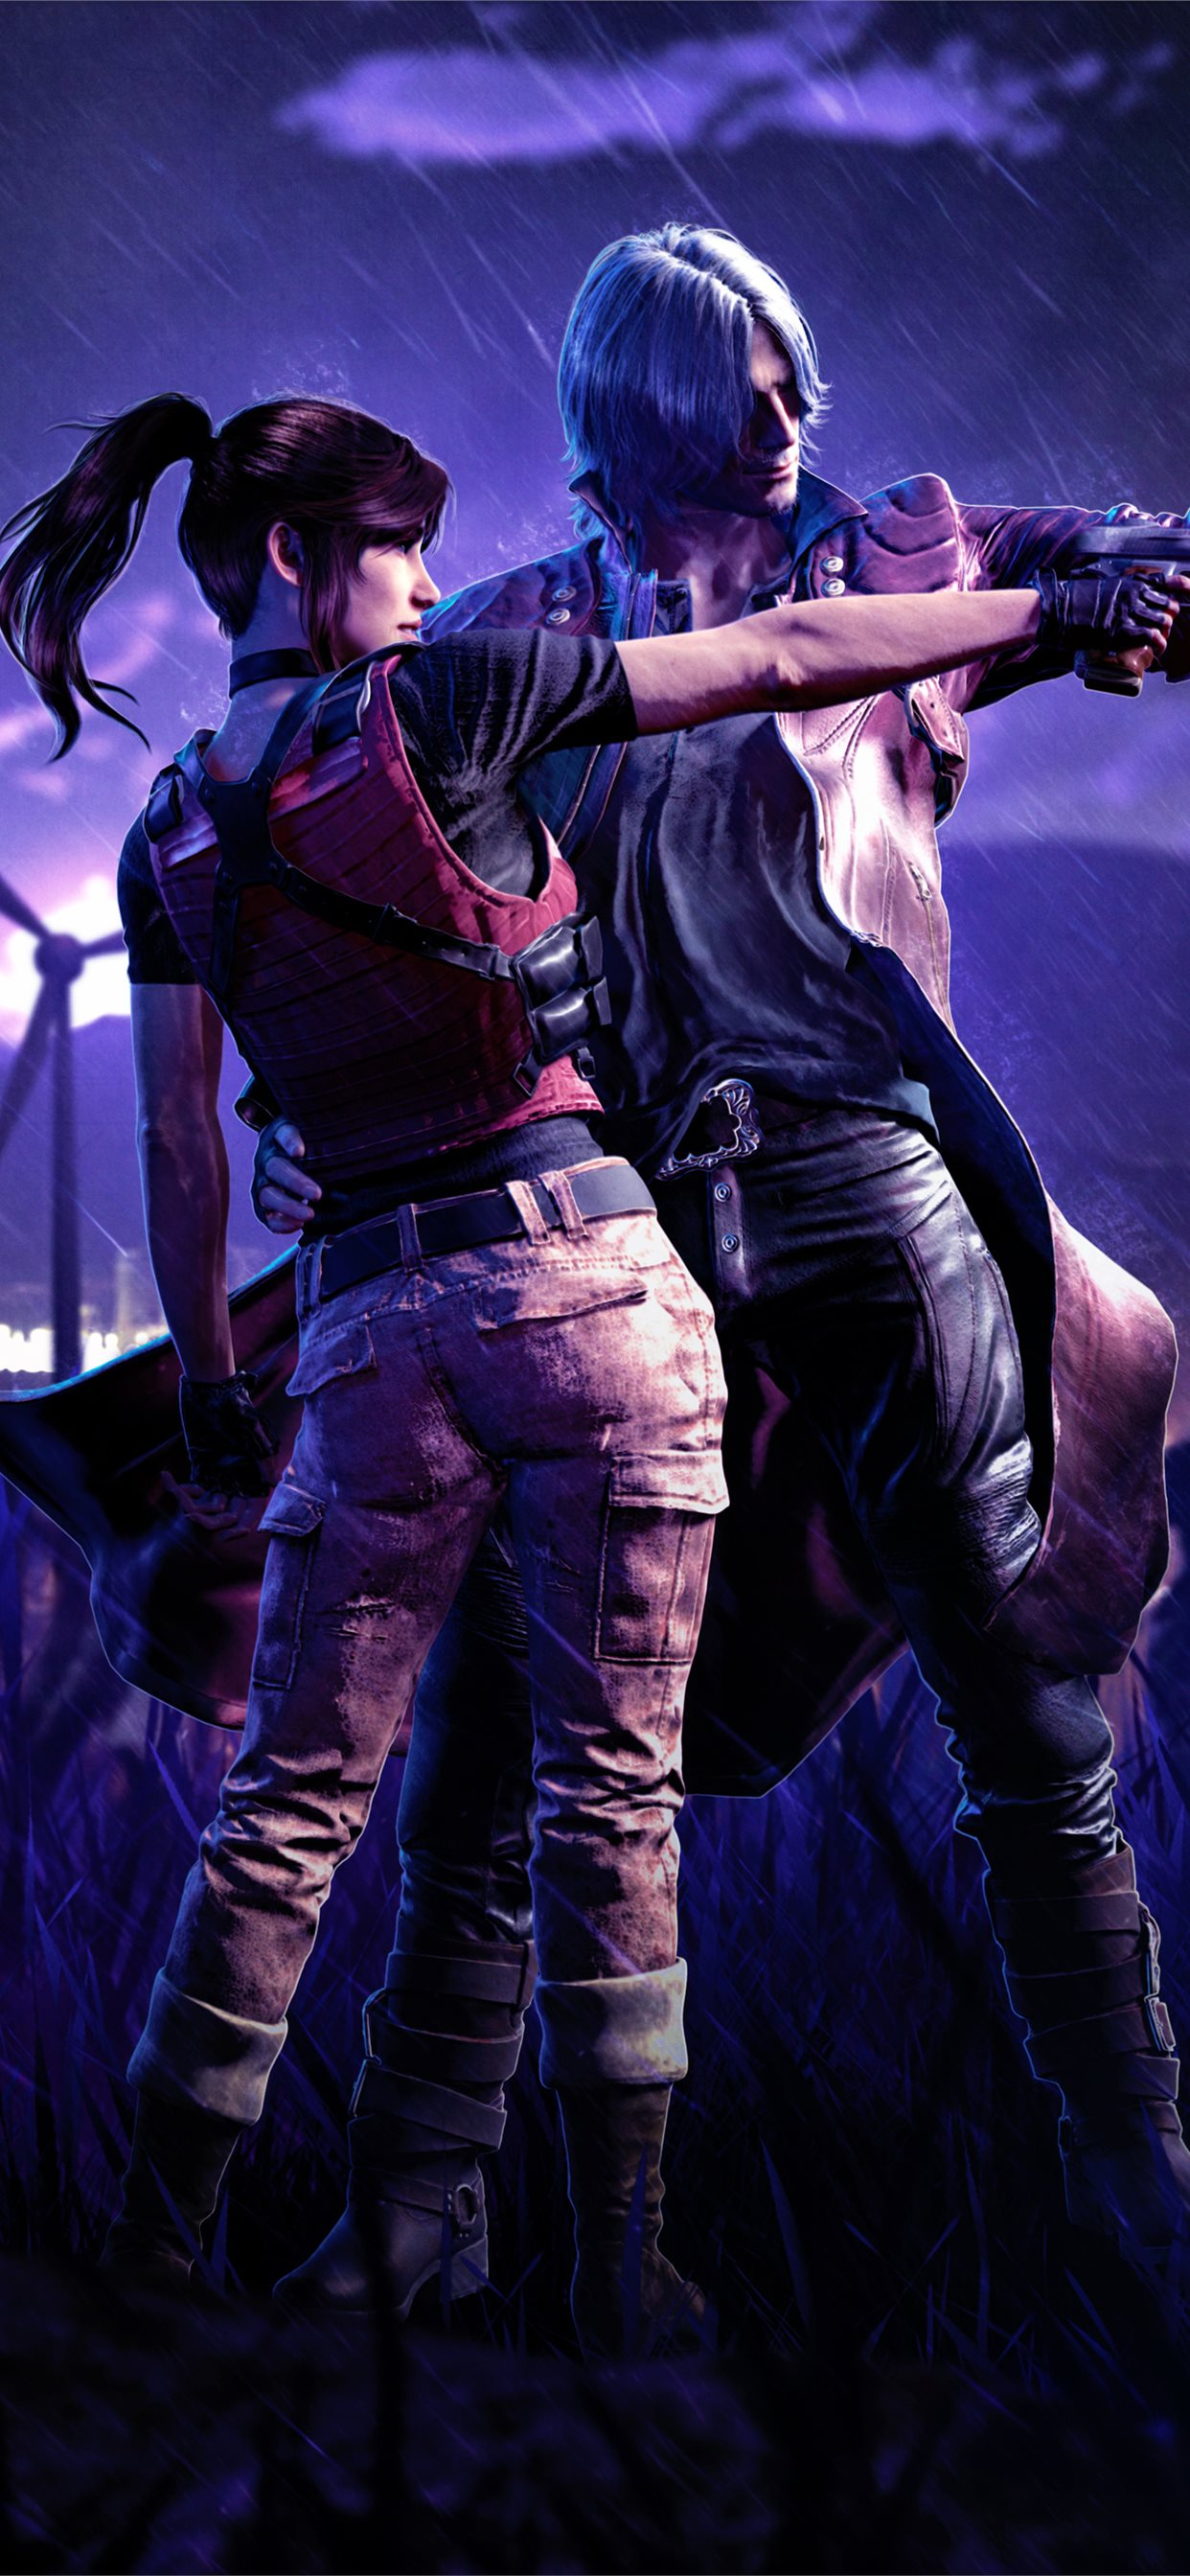 Resident Evil Devil May Cry 5 5k Iphone Wallpapers Free Download